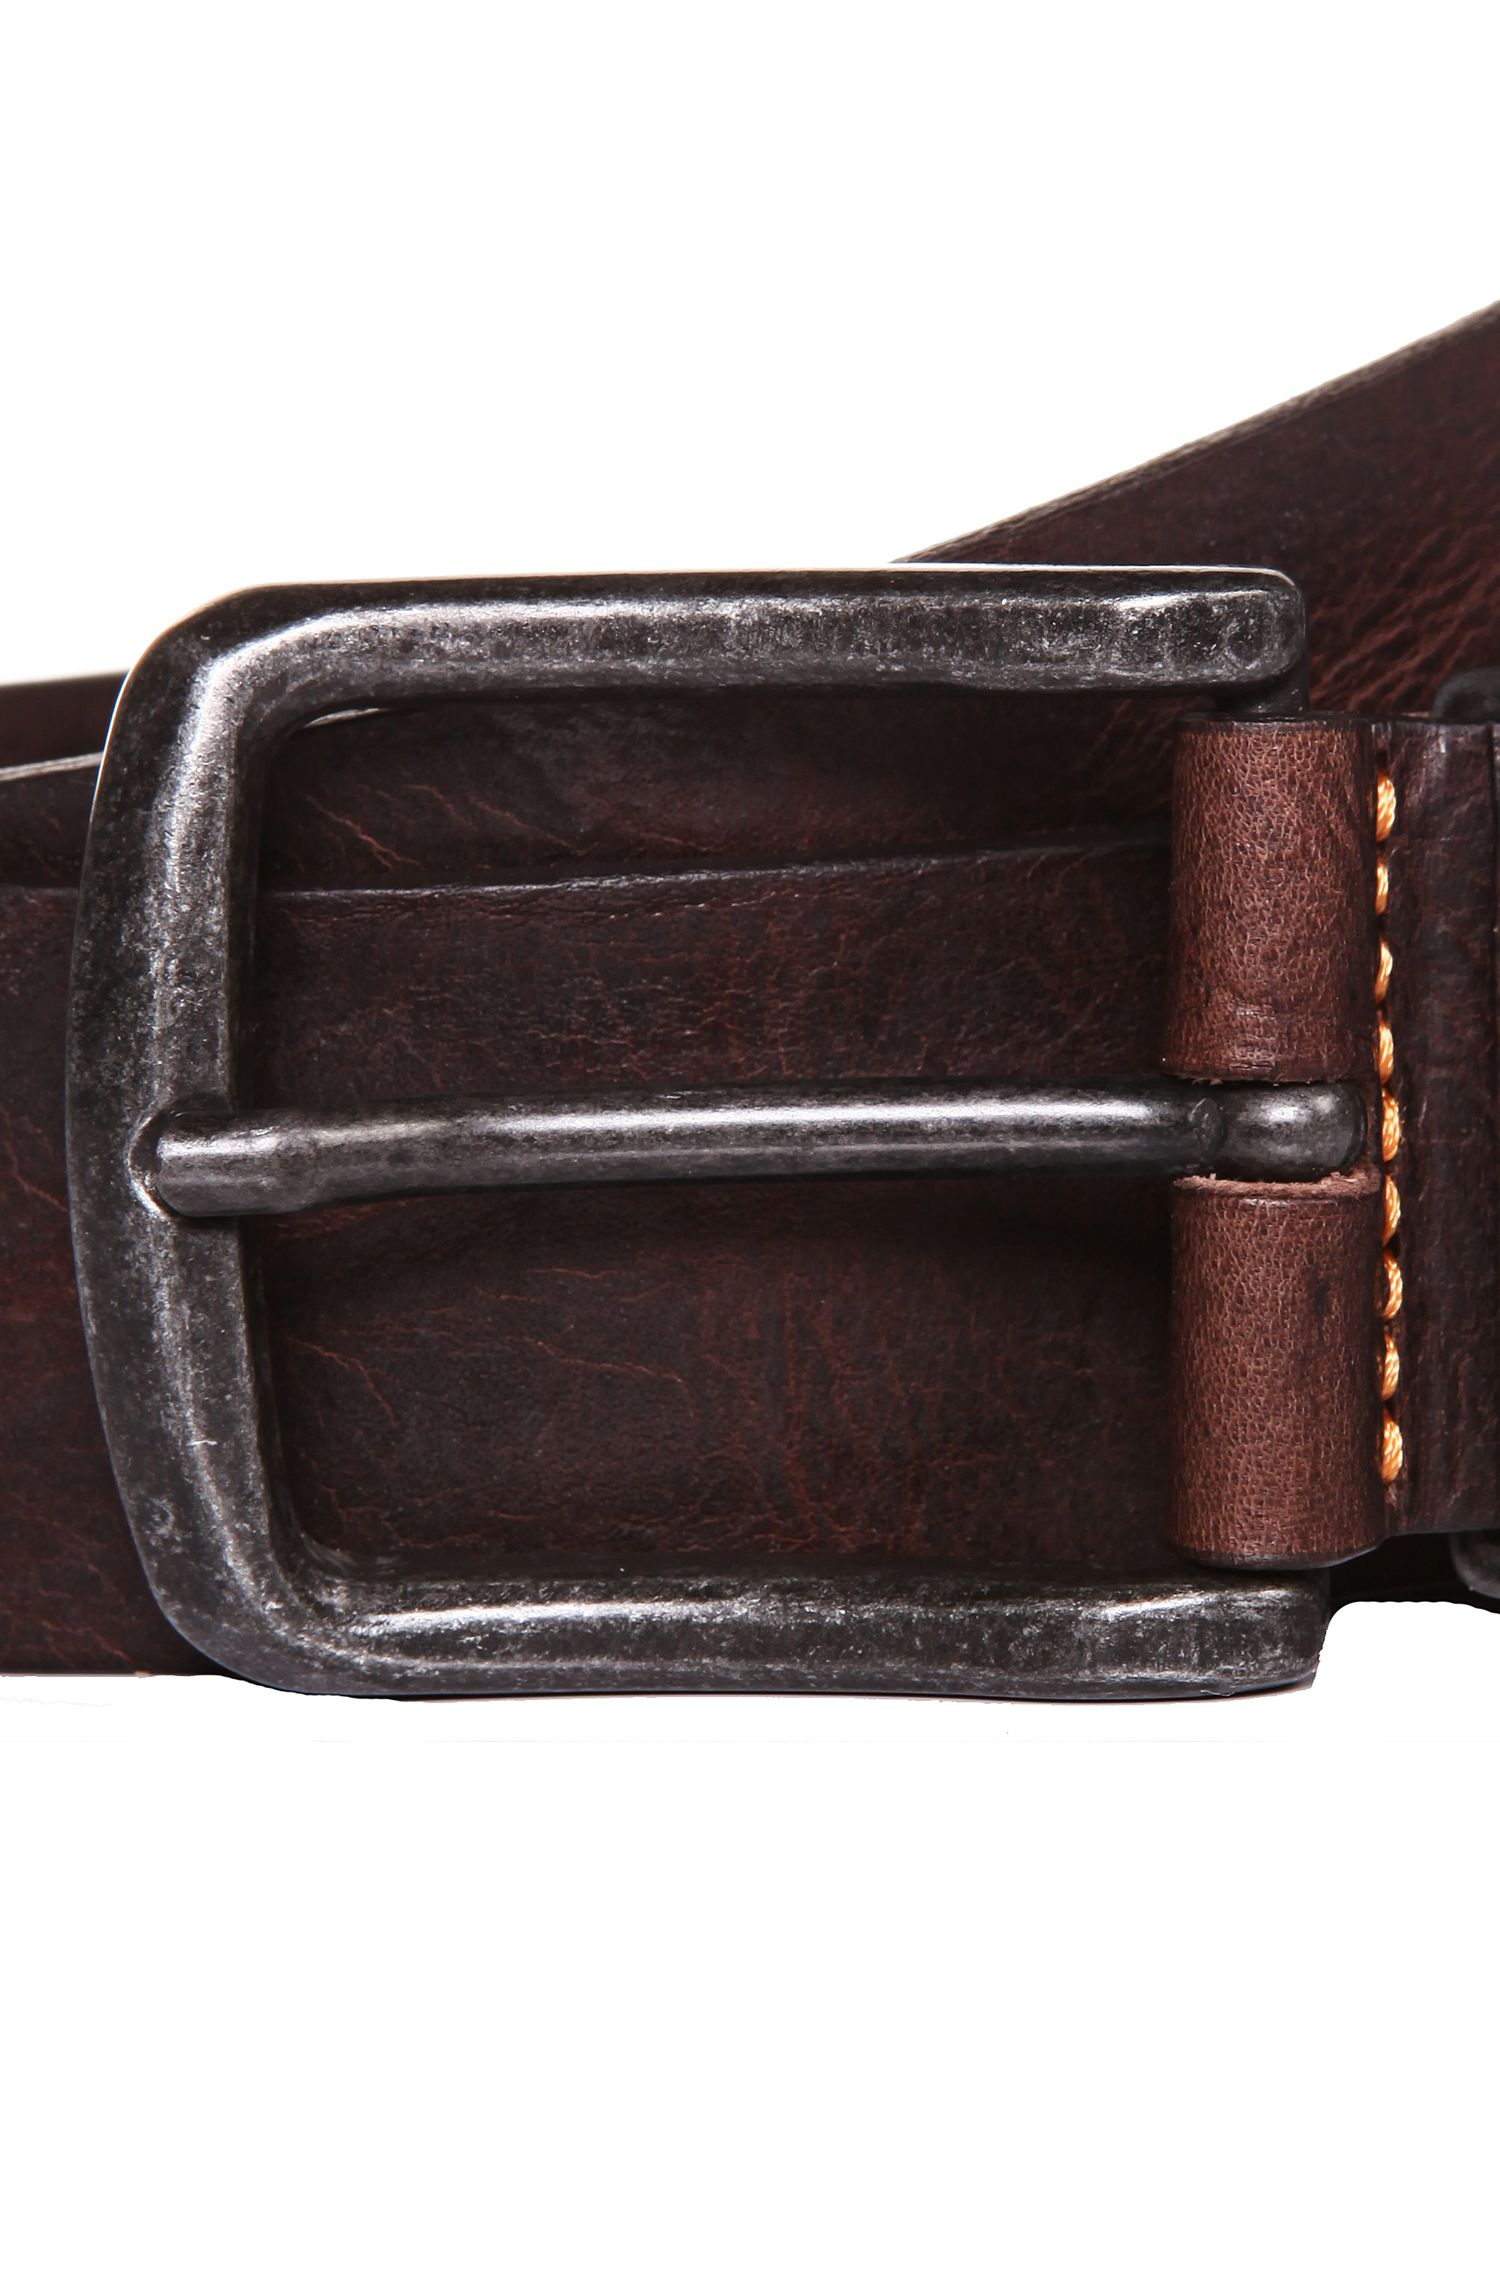 'Jeppo' | Italian Leather Belt